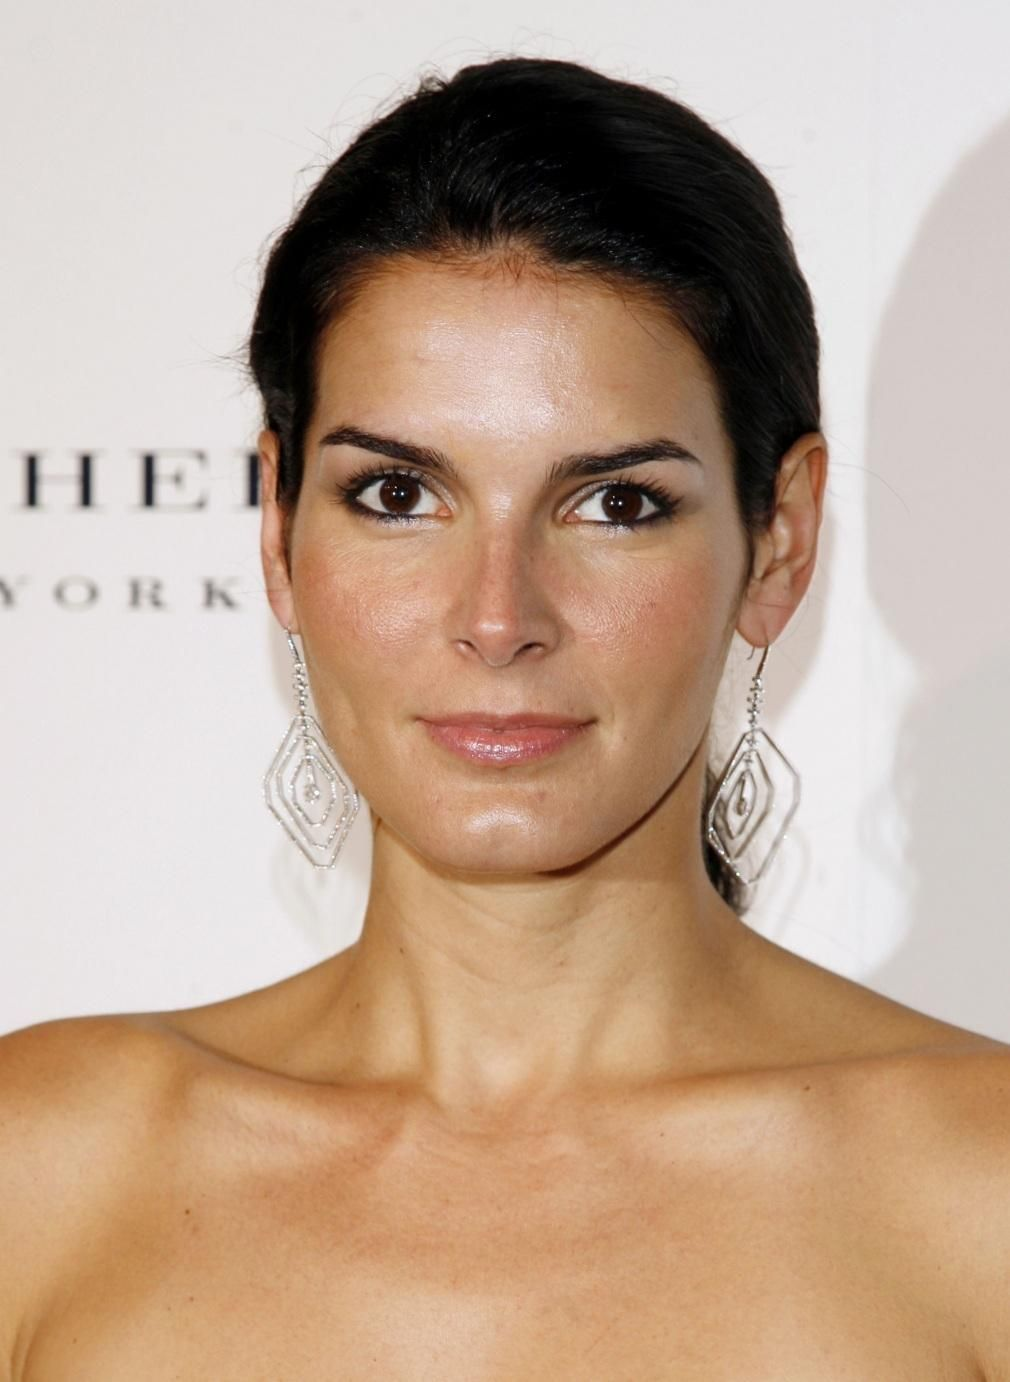 Angie Harmon born August 10, 1972 (age 46) nudes (59 photo), Topless, Cleavage, Feet, underwear 2017